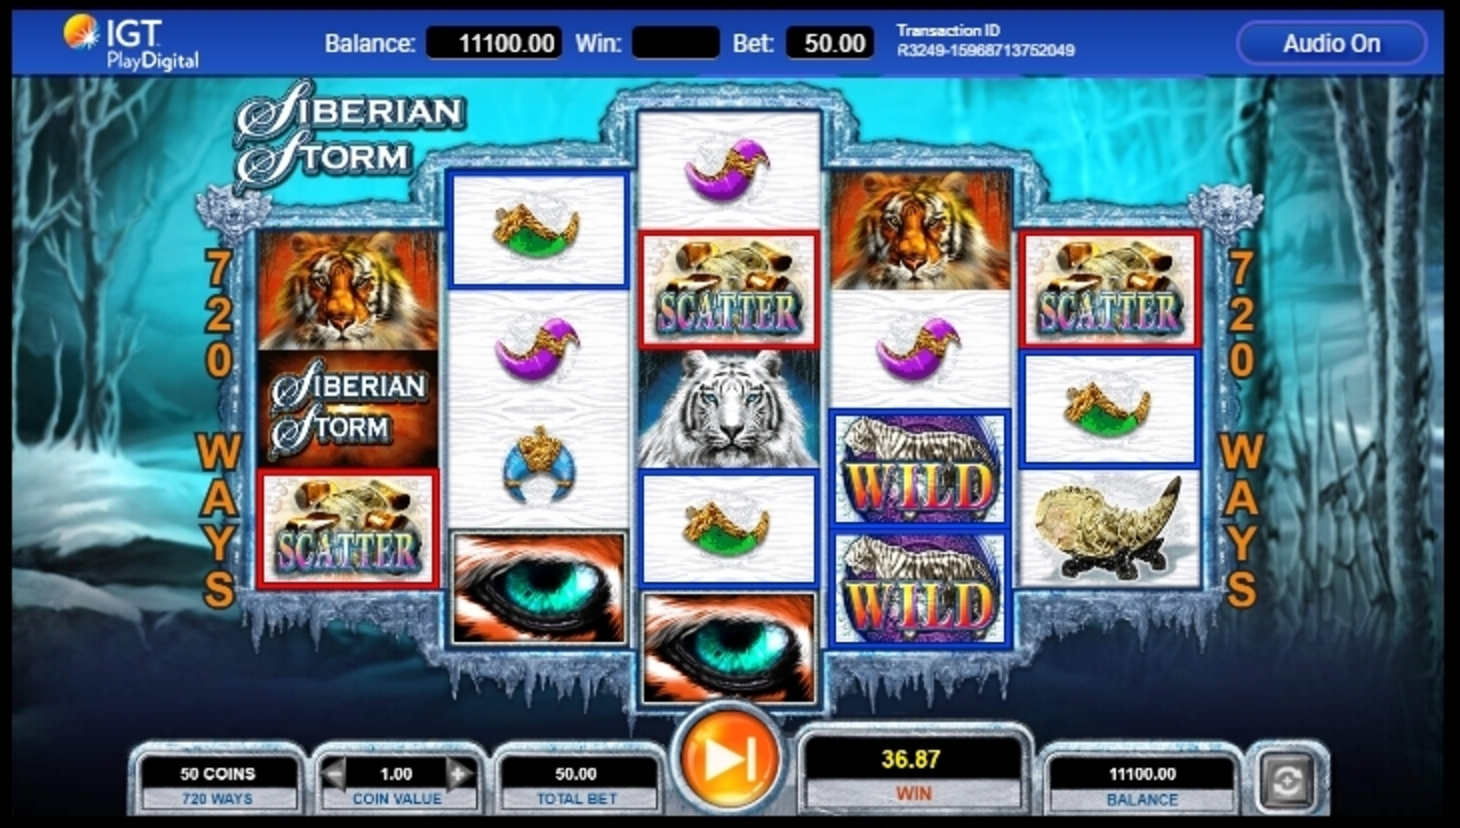 Win Money in Siberian Storm Free Slot Game by IGT